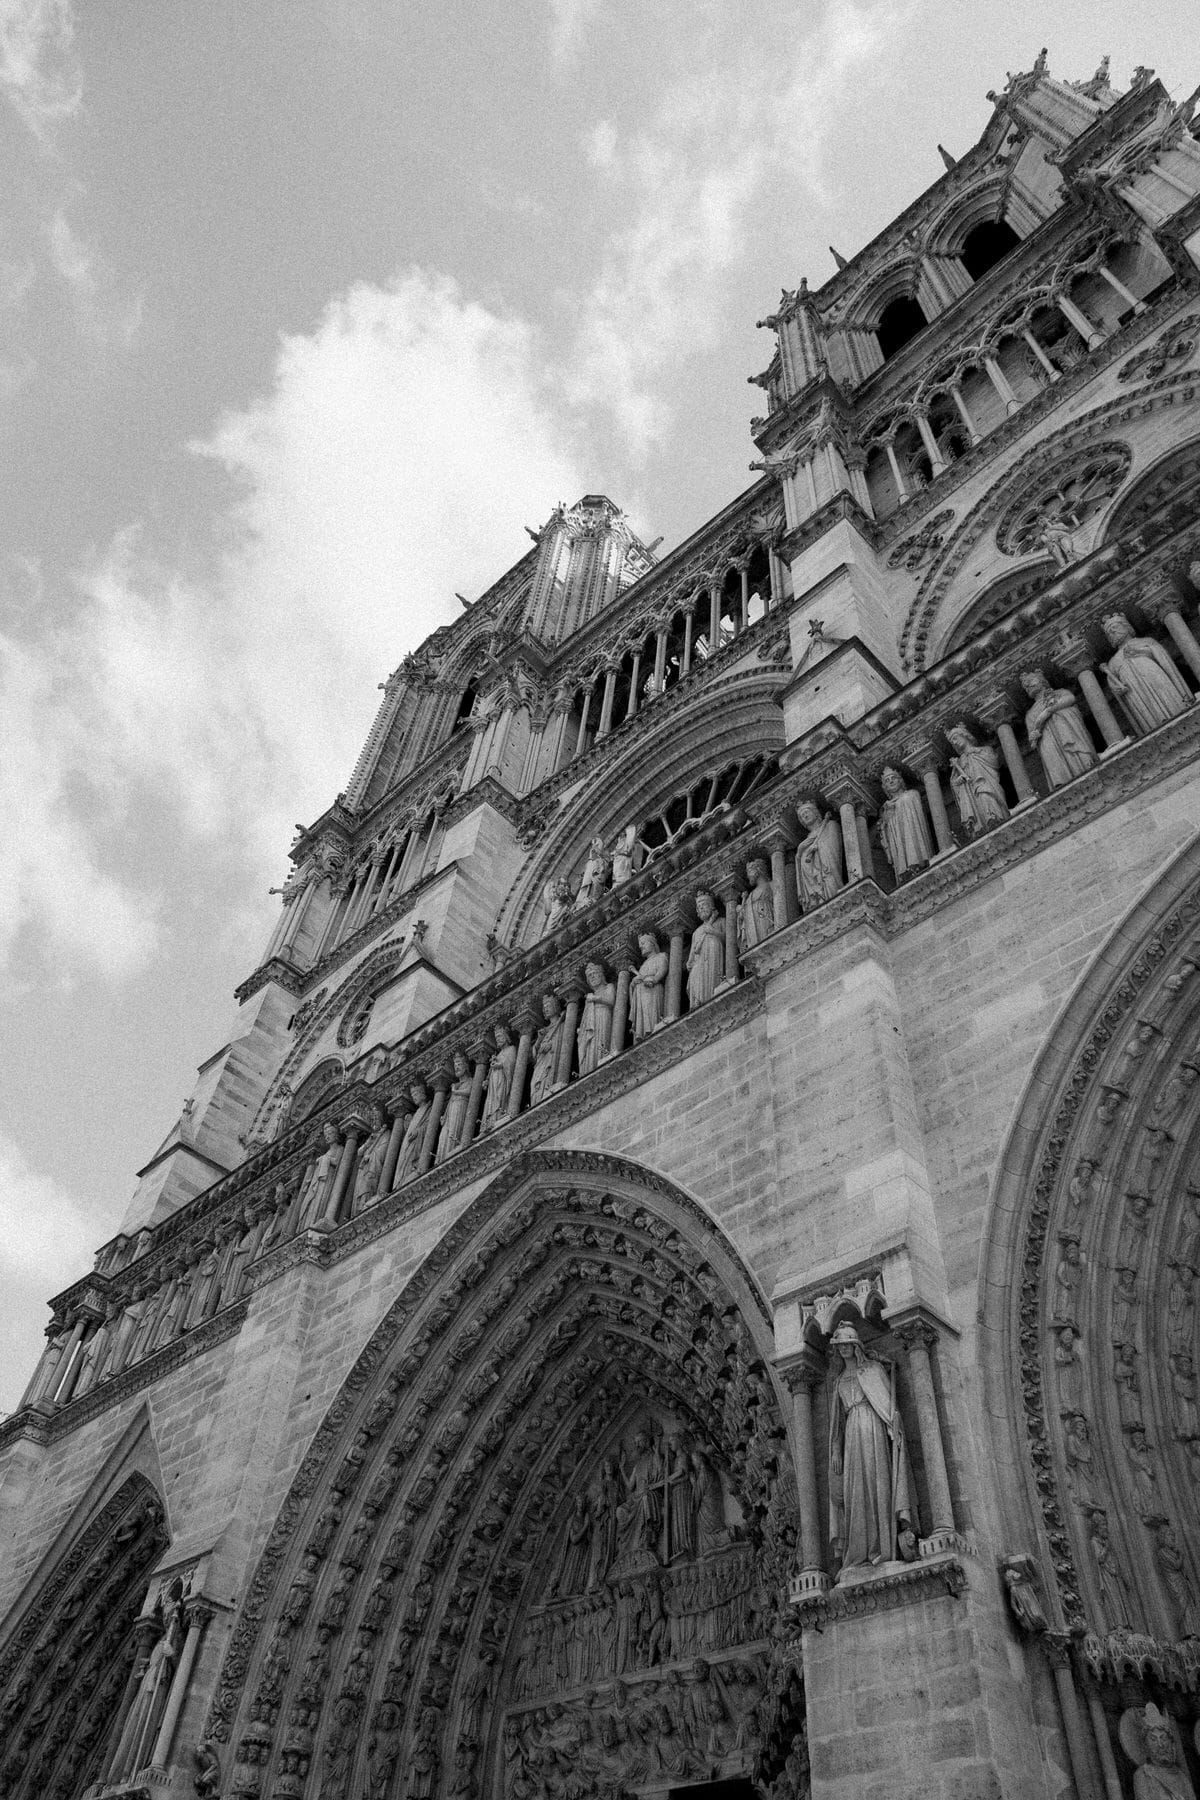 Notre-Dame-Paris-France-fine-art-photography-by-Studio-L-photographer-Laura-Schneider-_4934